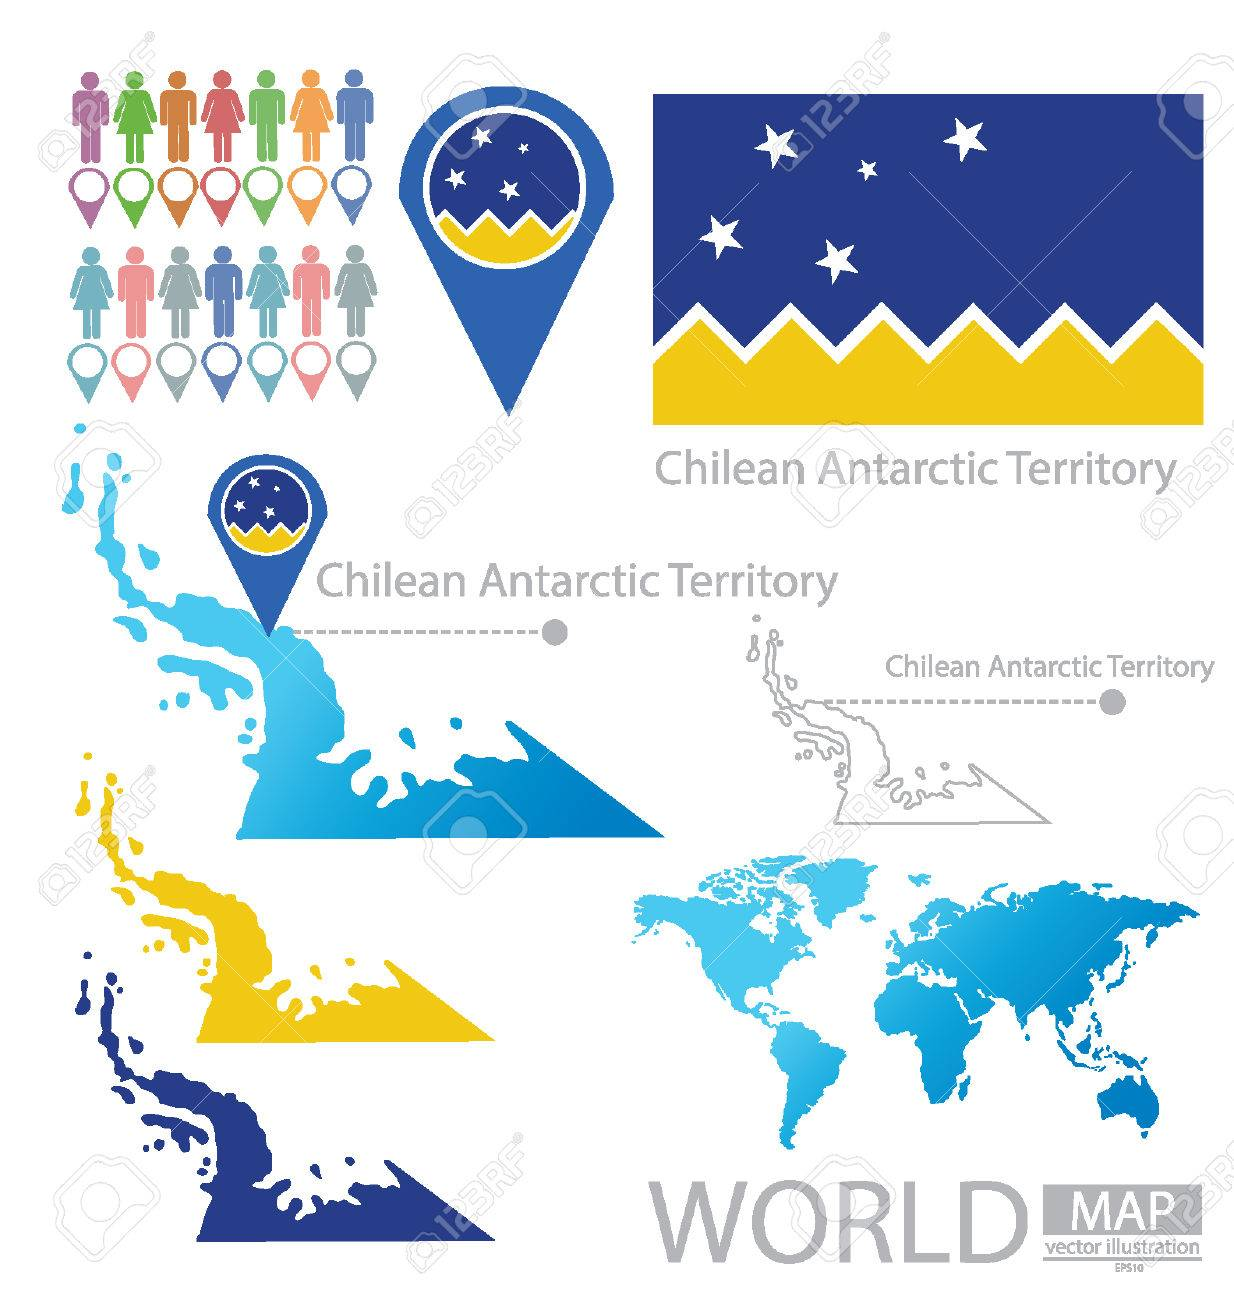 Chilean Antarctic Territory vector Illustration Stock Vector - 24896221